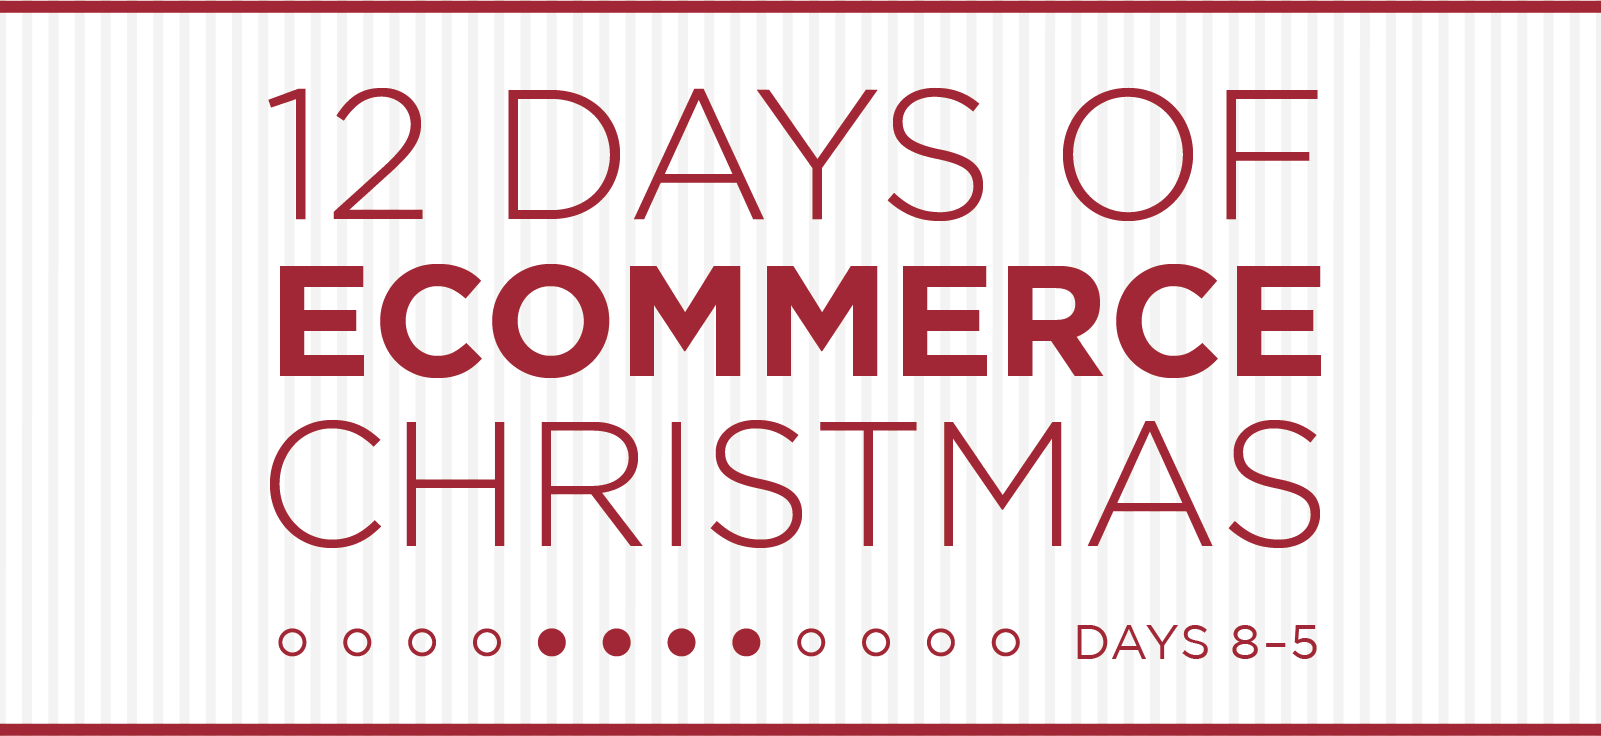 12-days-ecommerce-header-8-5